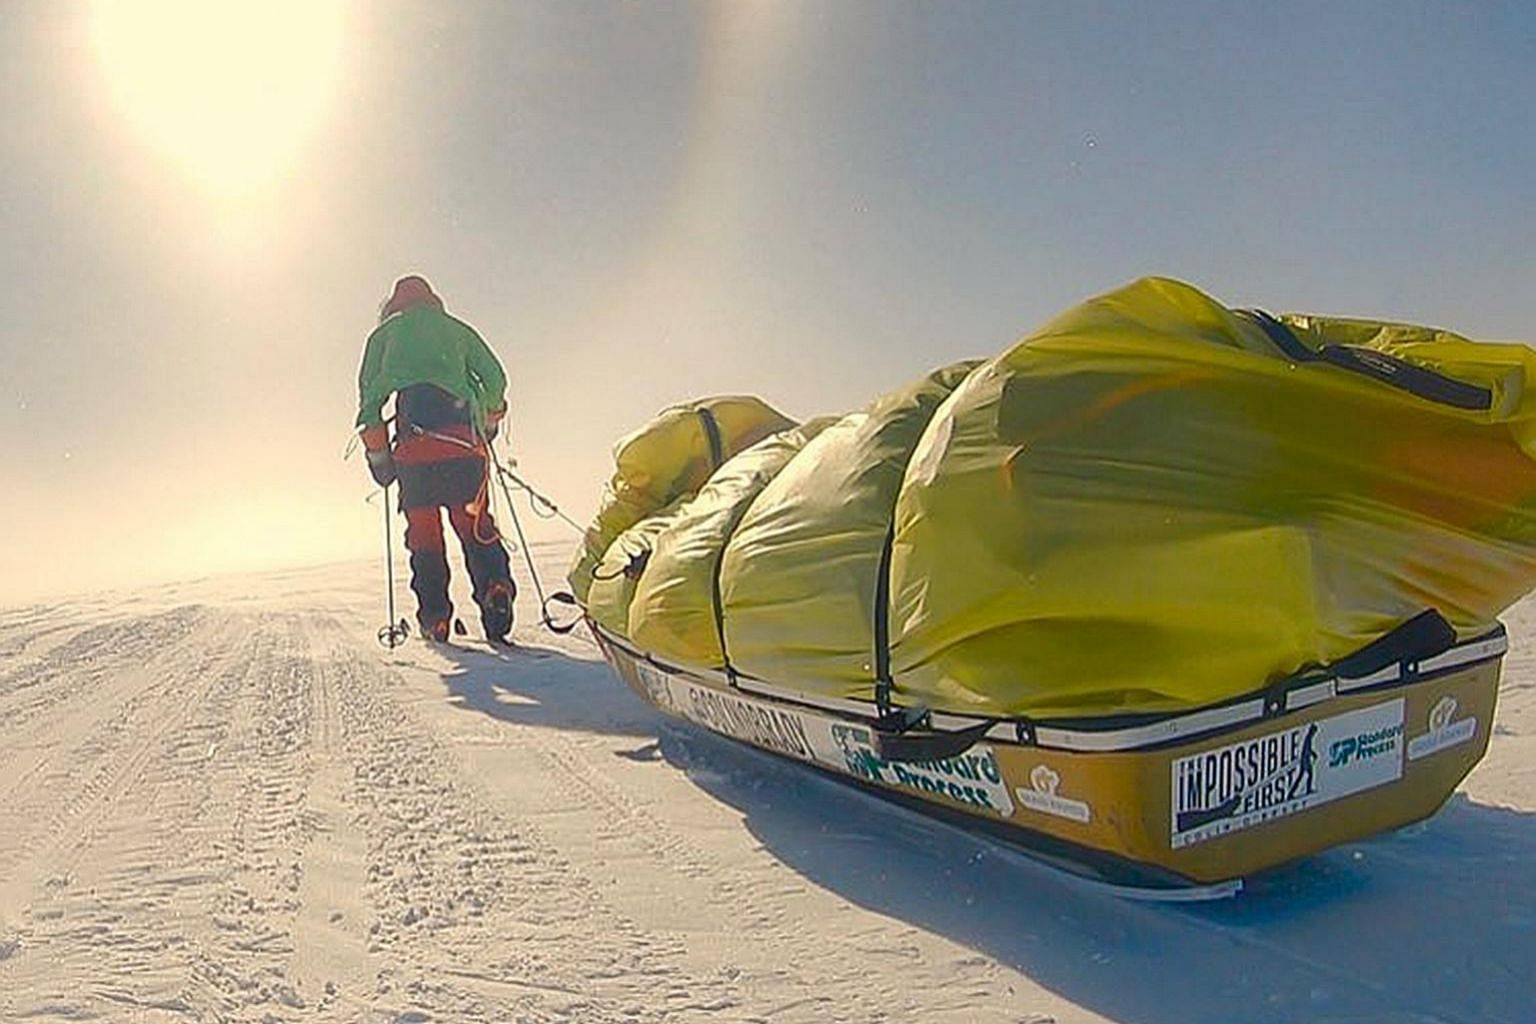 US adventurer Colin O'Brady (above) arrived at the finishing point on the Ross Ice Shelf on the Pacific Ocean on Wednesday after covering a total of 1,480km. The 33-year-old had set off on cross-country skis on Nov 3, hauling supplies on a sled (righ